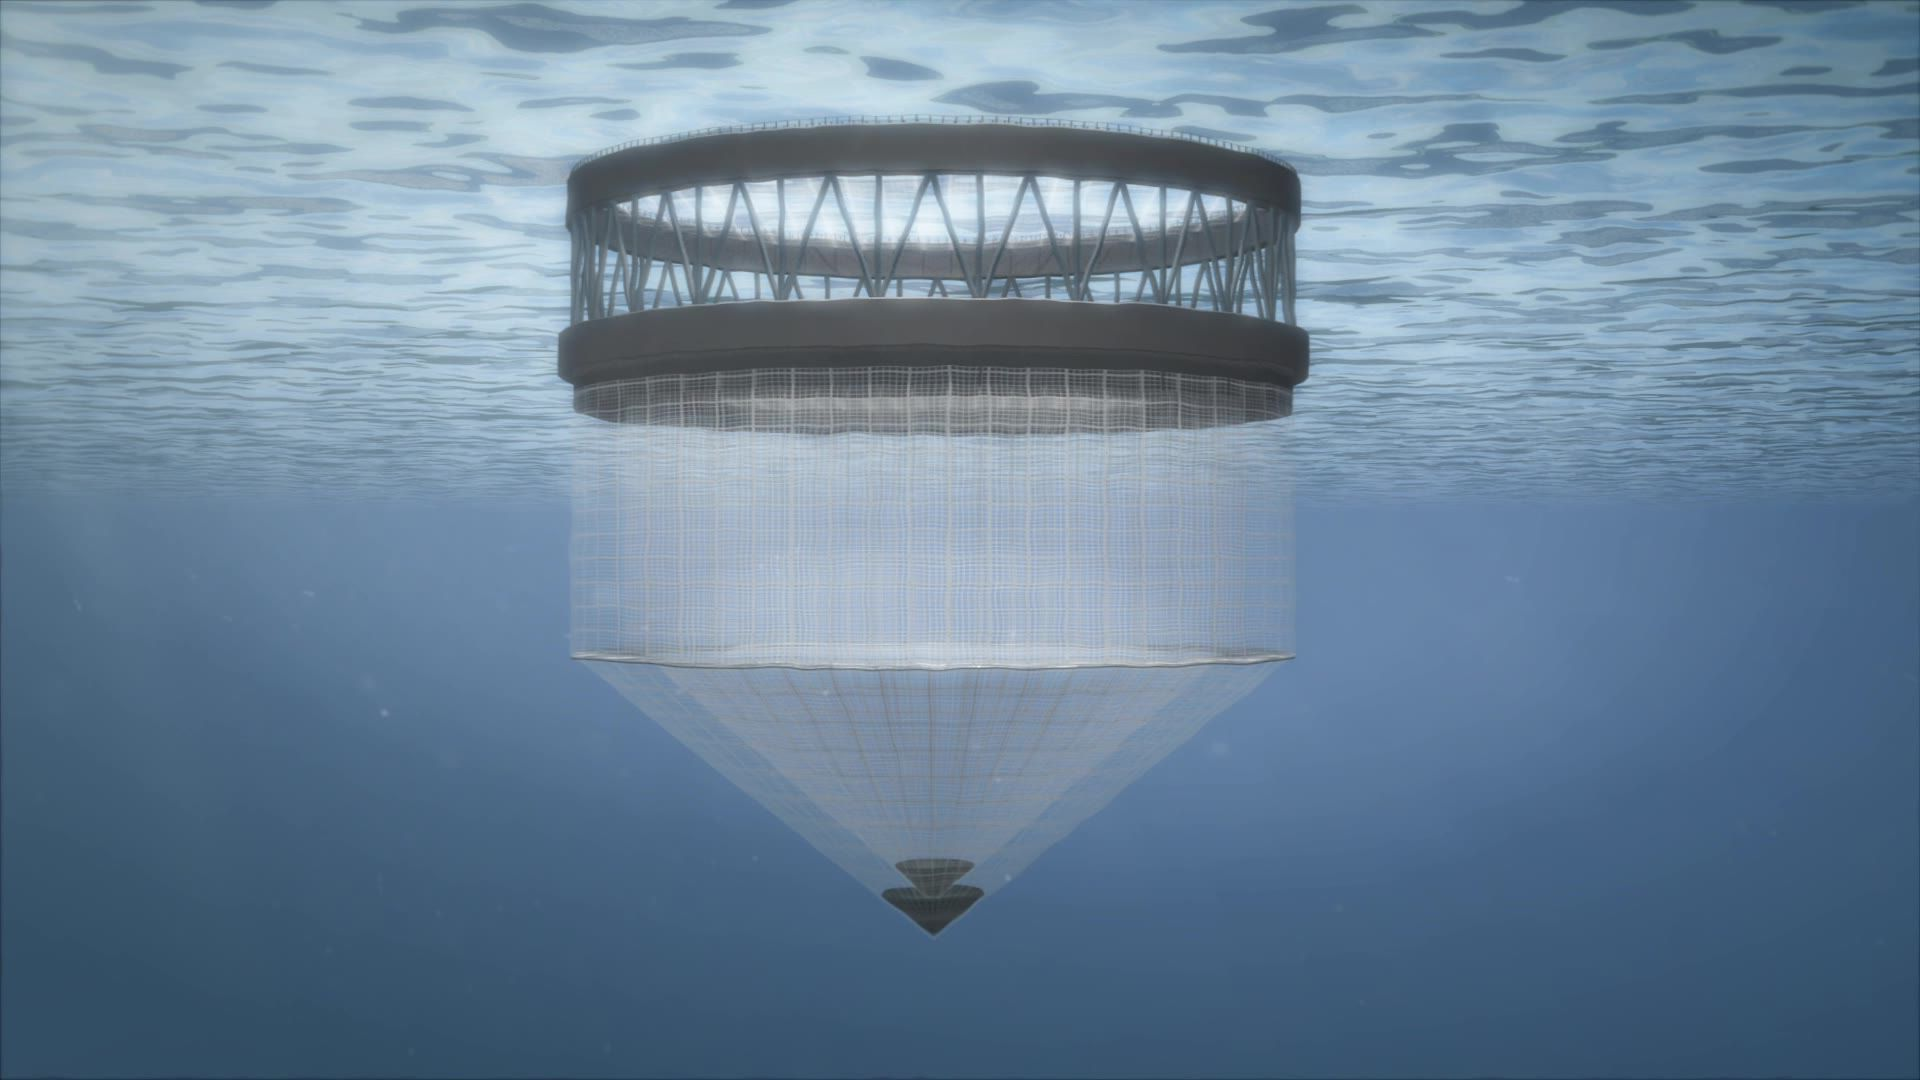 Norway to build semi-submersible fish farms by 2020